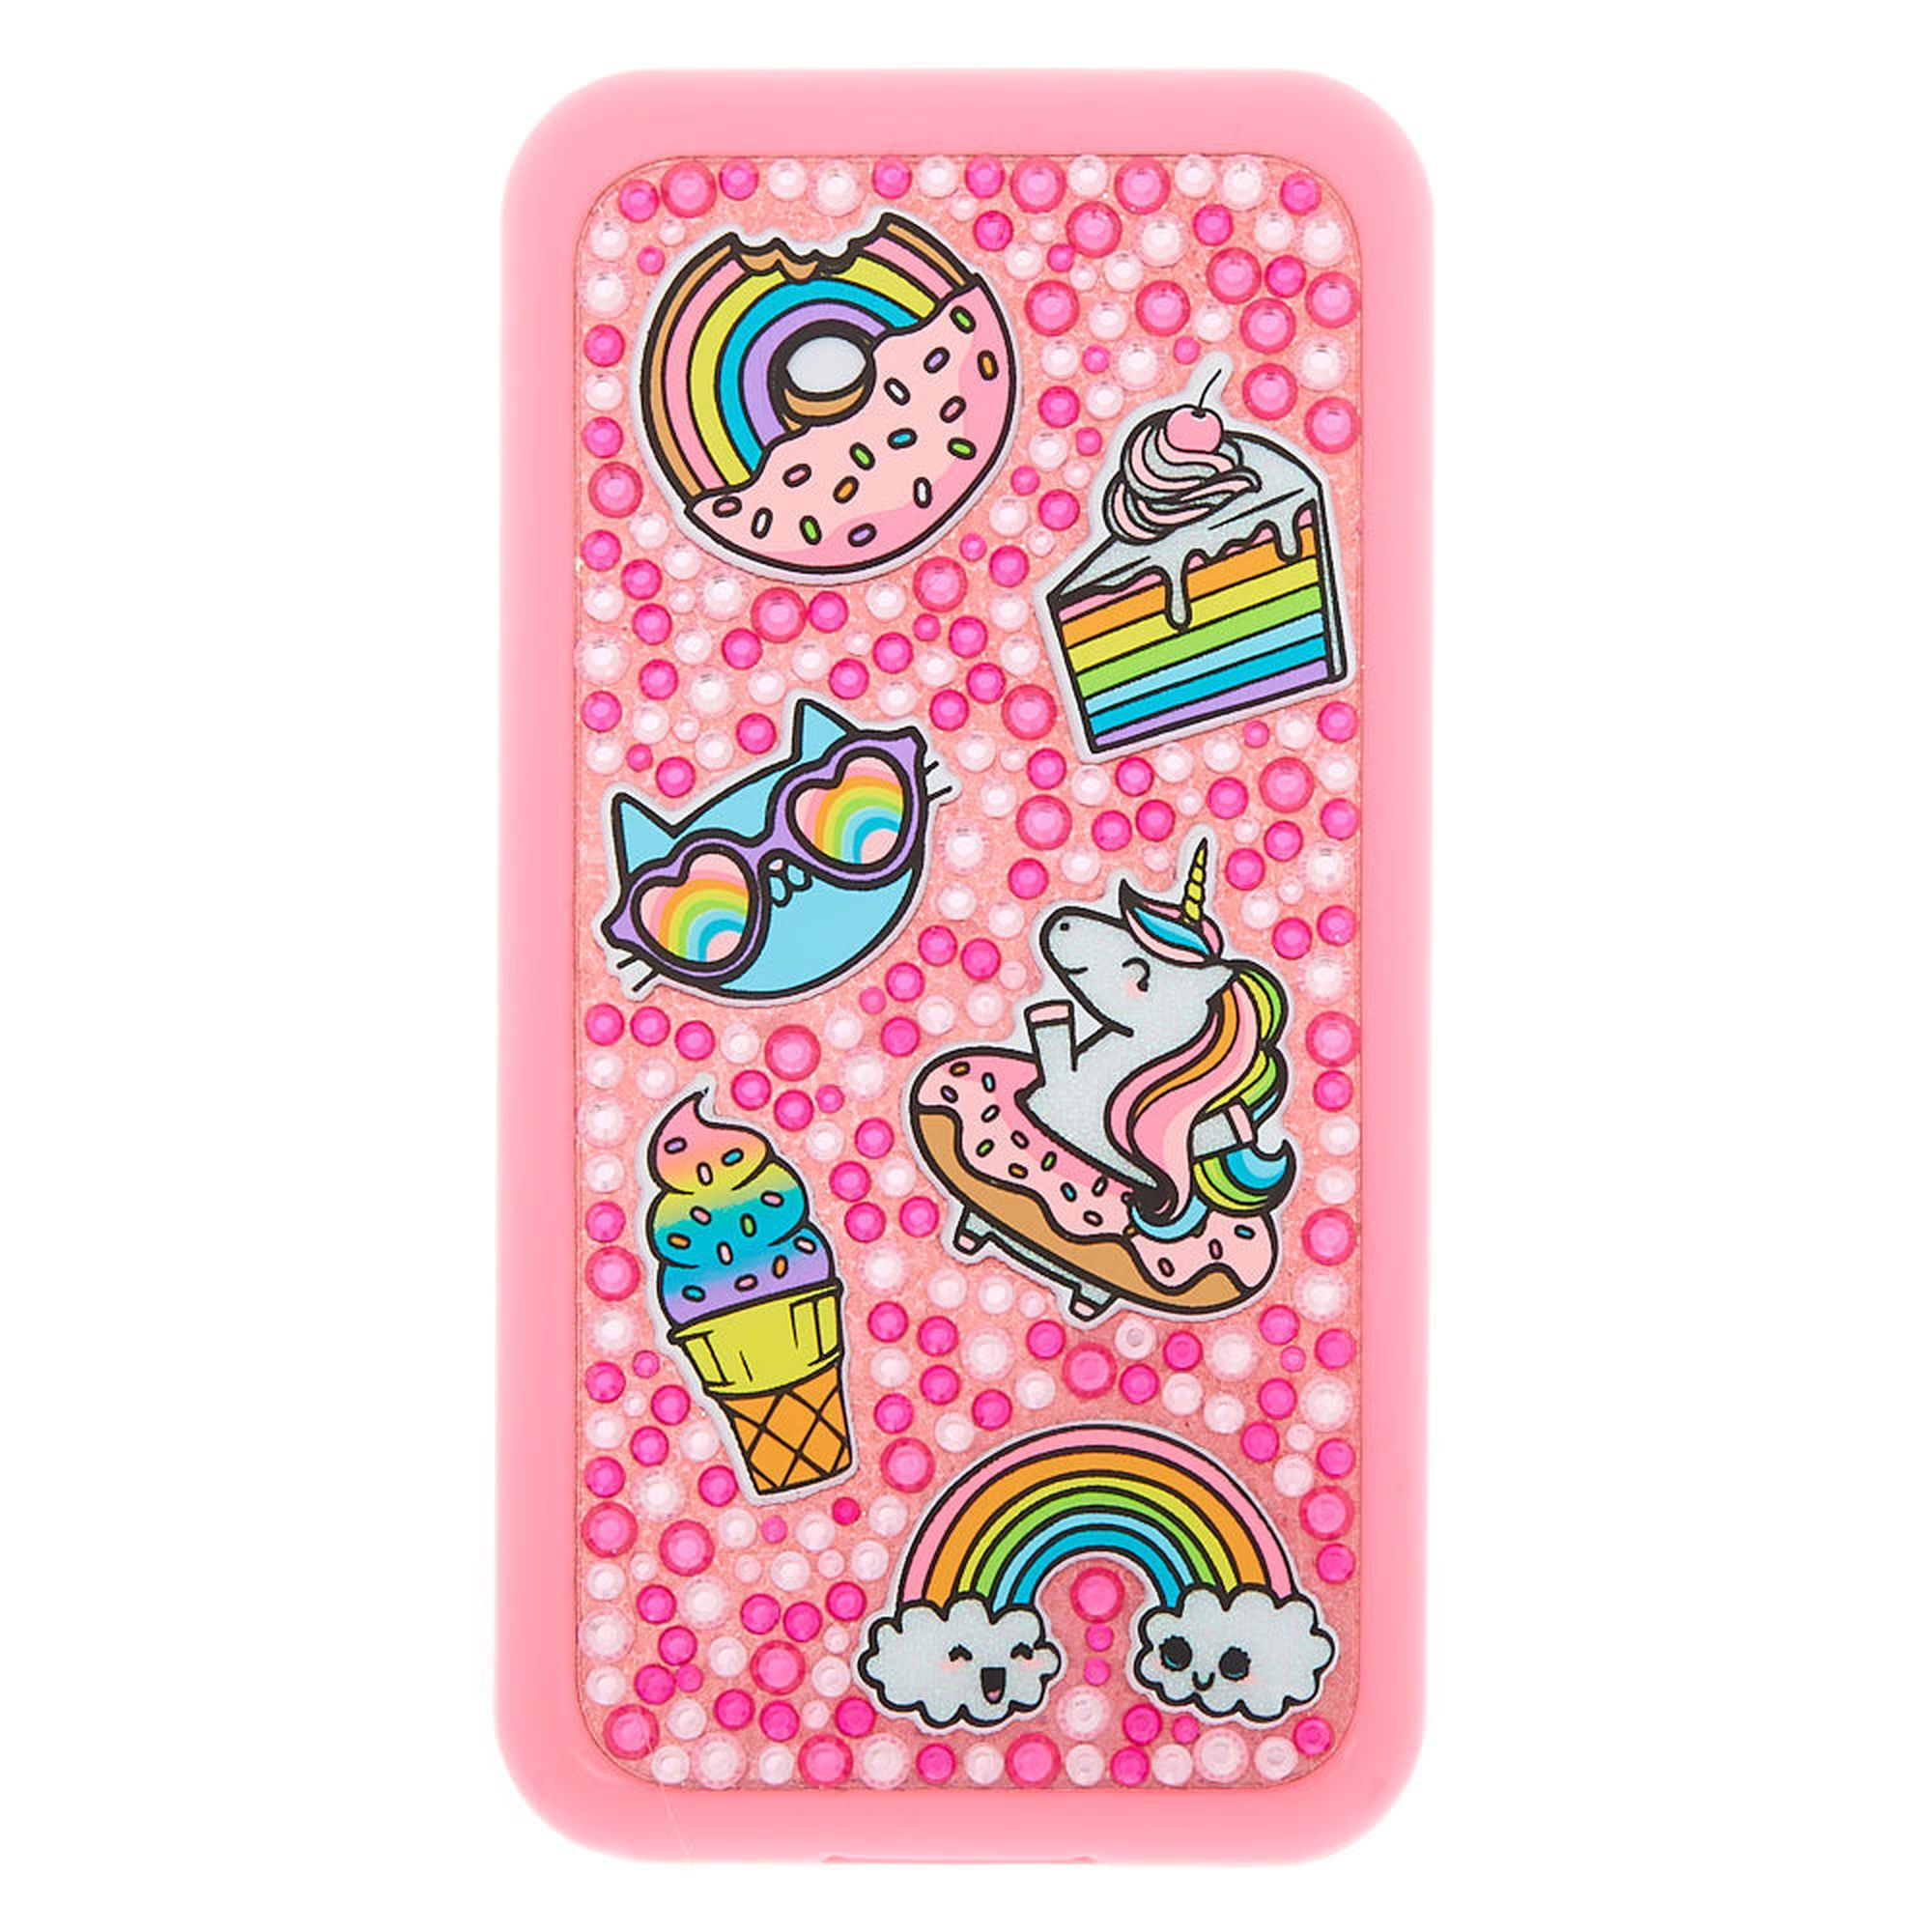 Claire's Chasing Rainbows Cell Phone Bling Makeup Set